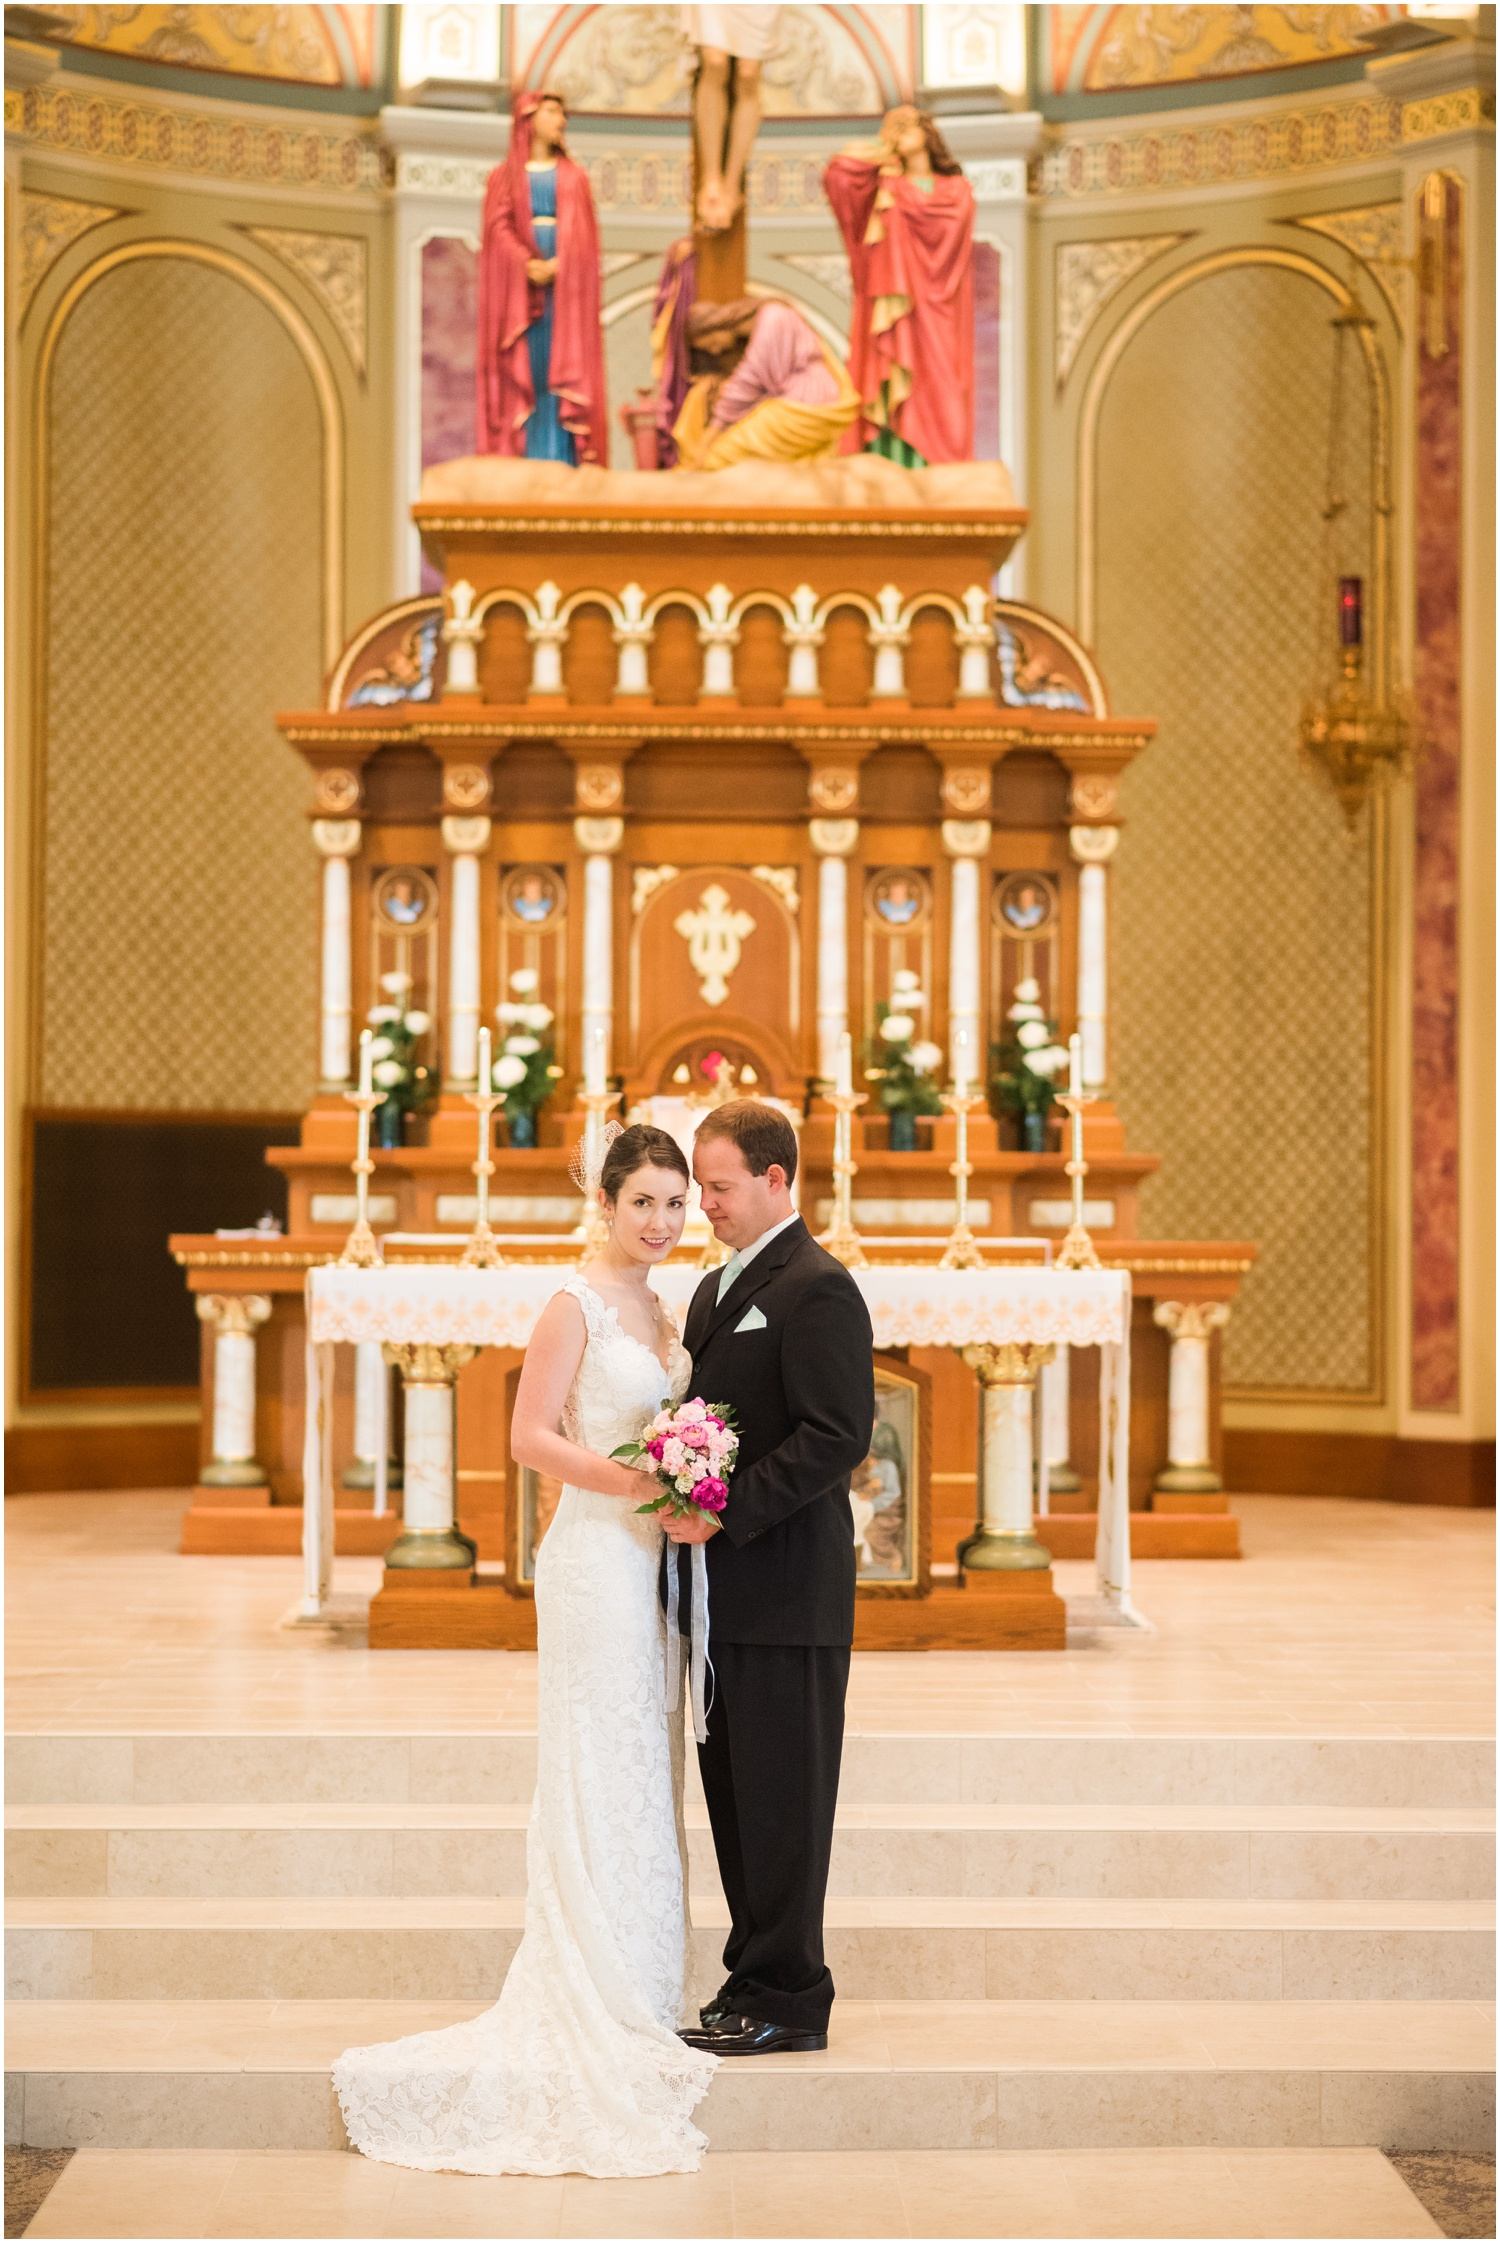 WISCONSIN DELLS WEDDING PHOTOGRAPHER | ST. CECILIA CATHOLIC CHURCH | WISCONSIN DELLS, WI | WEDDING_0249.jpg